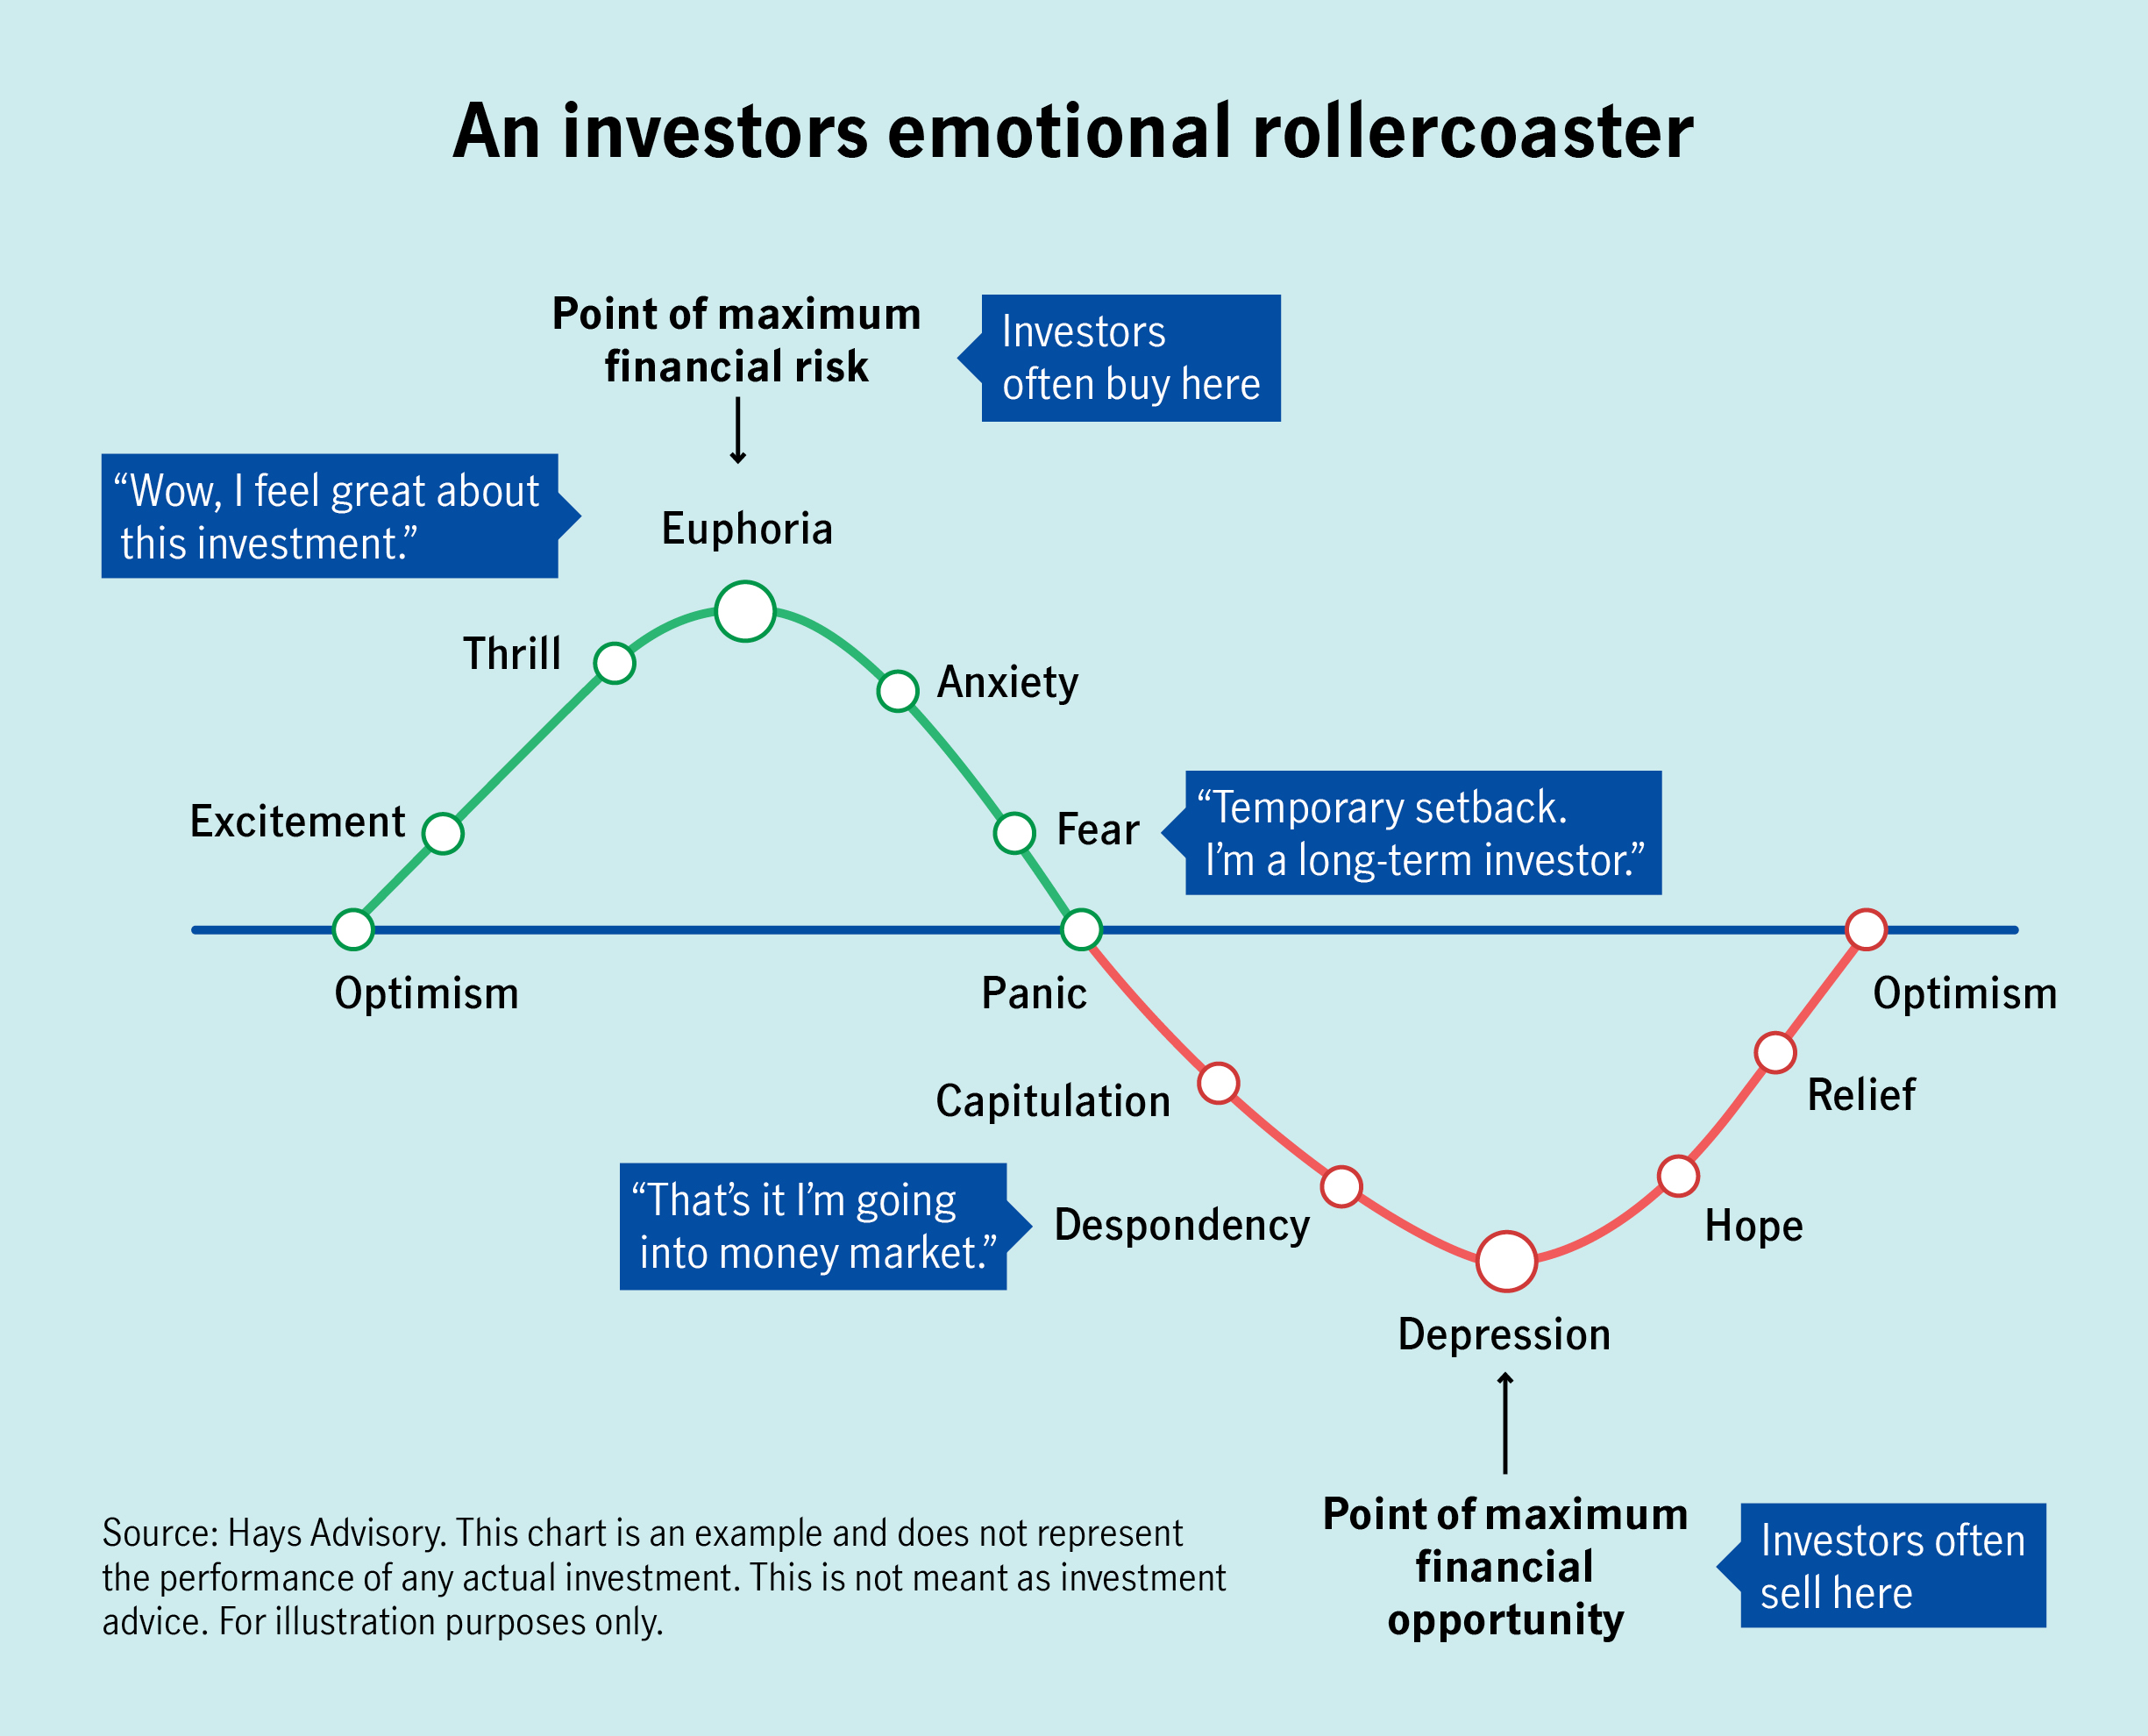 Time and again, emotions get the better of investors – fear of missing out can prompt buying at the high point in the market, and fear of losses can prompt a selling spree when markets dip. Being mindful of the emotional roller-coaster and staying committed to the long-term plan can help investors stay on track.